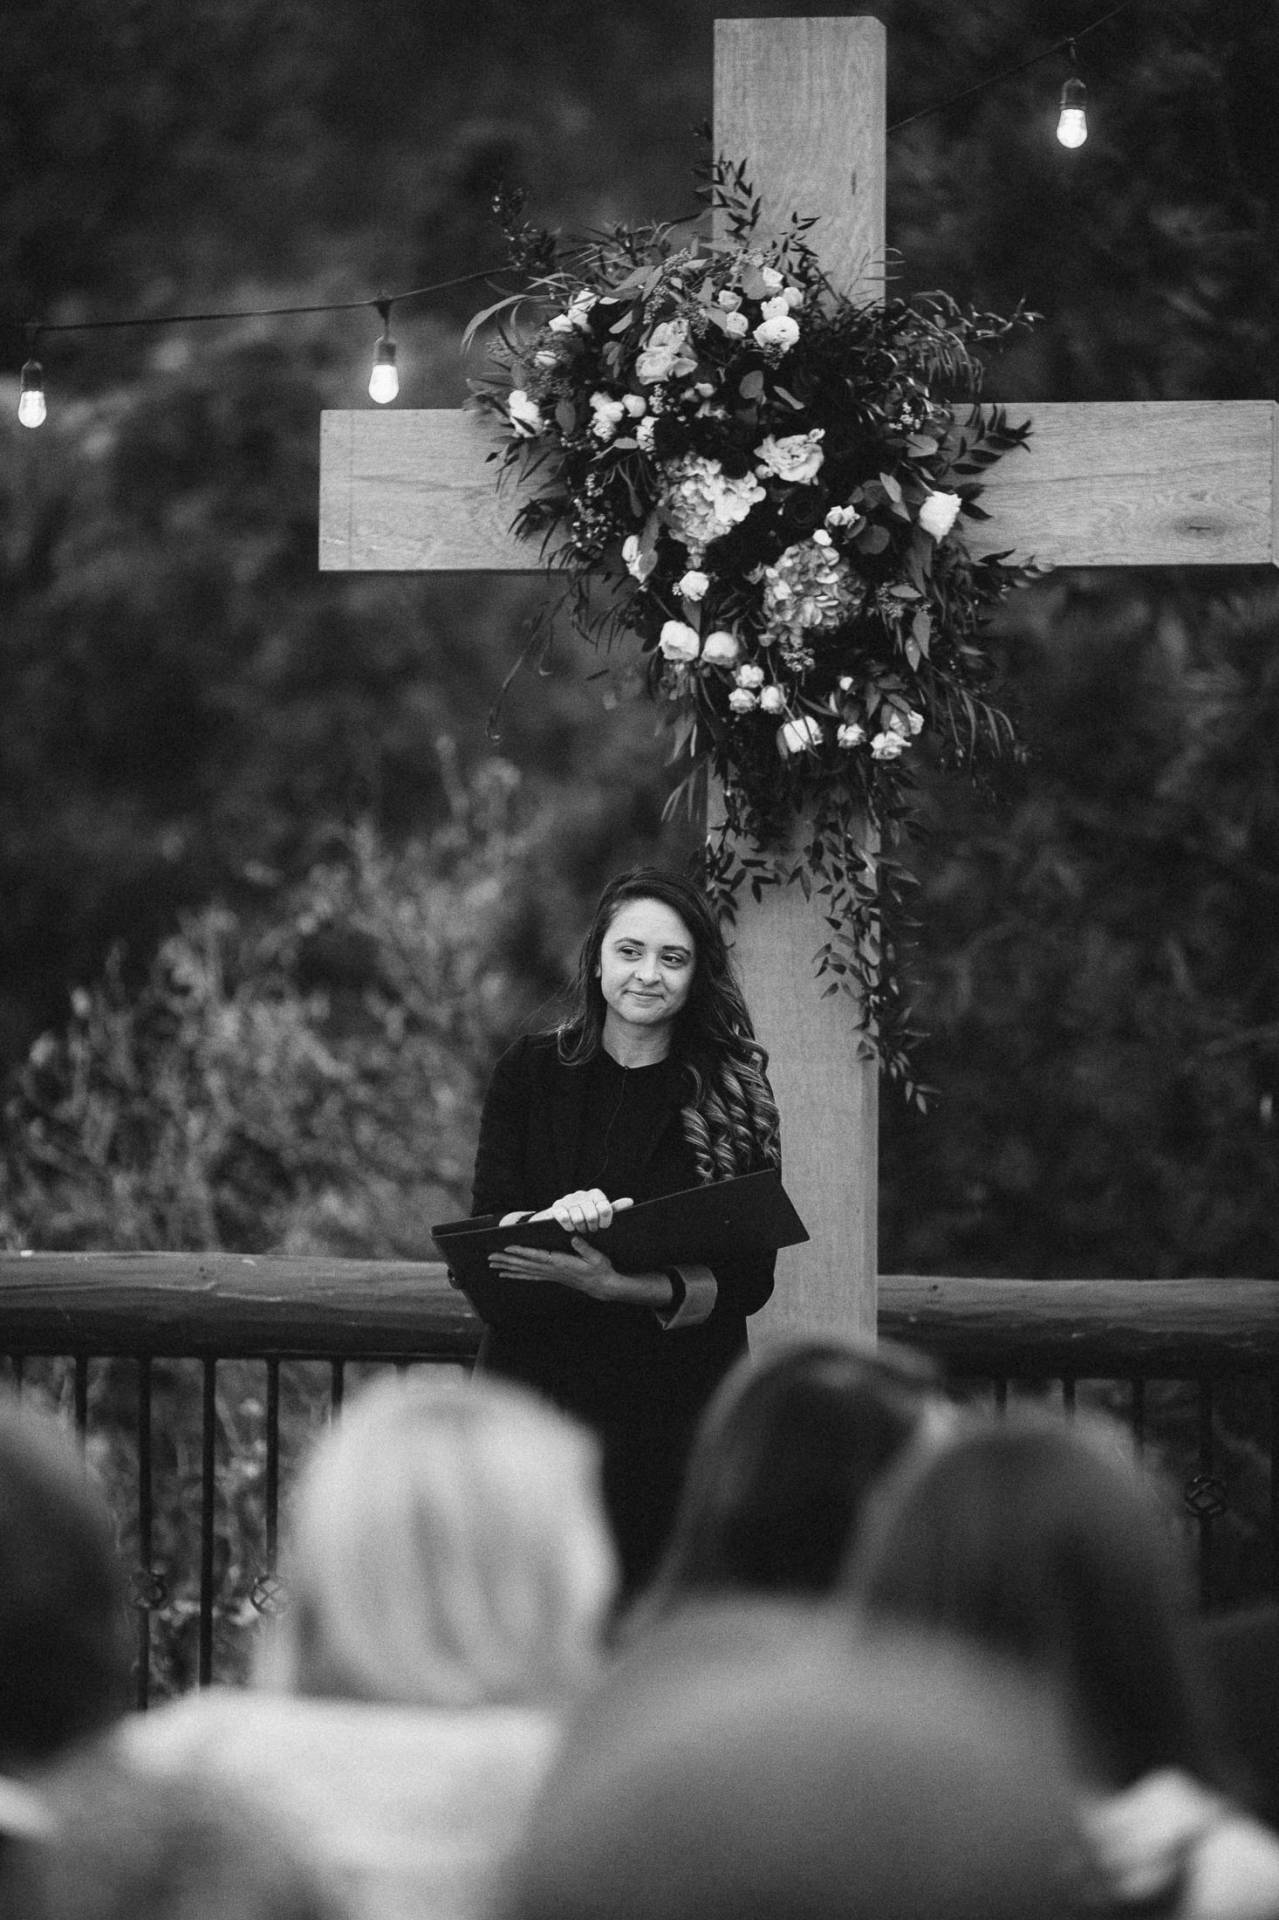 Black and white photo of minister standing at altar during wedding ceremony.